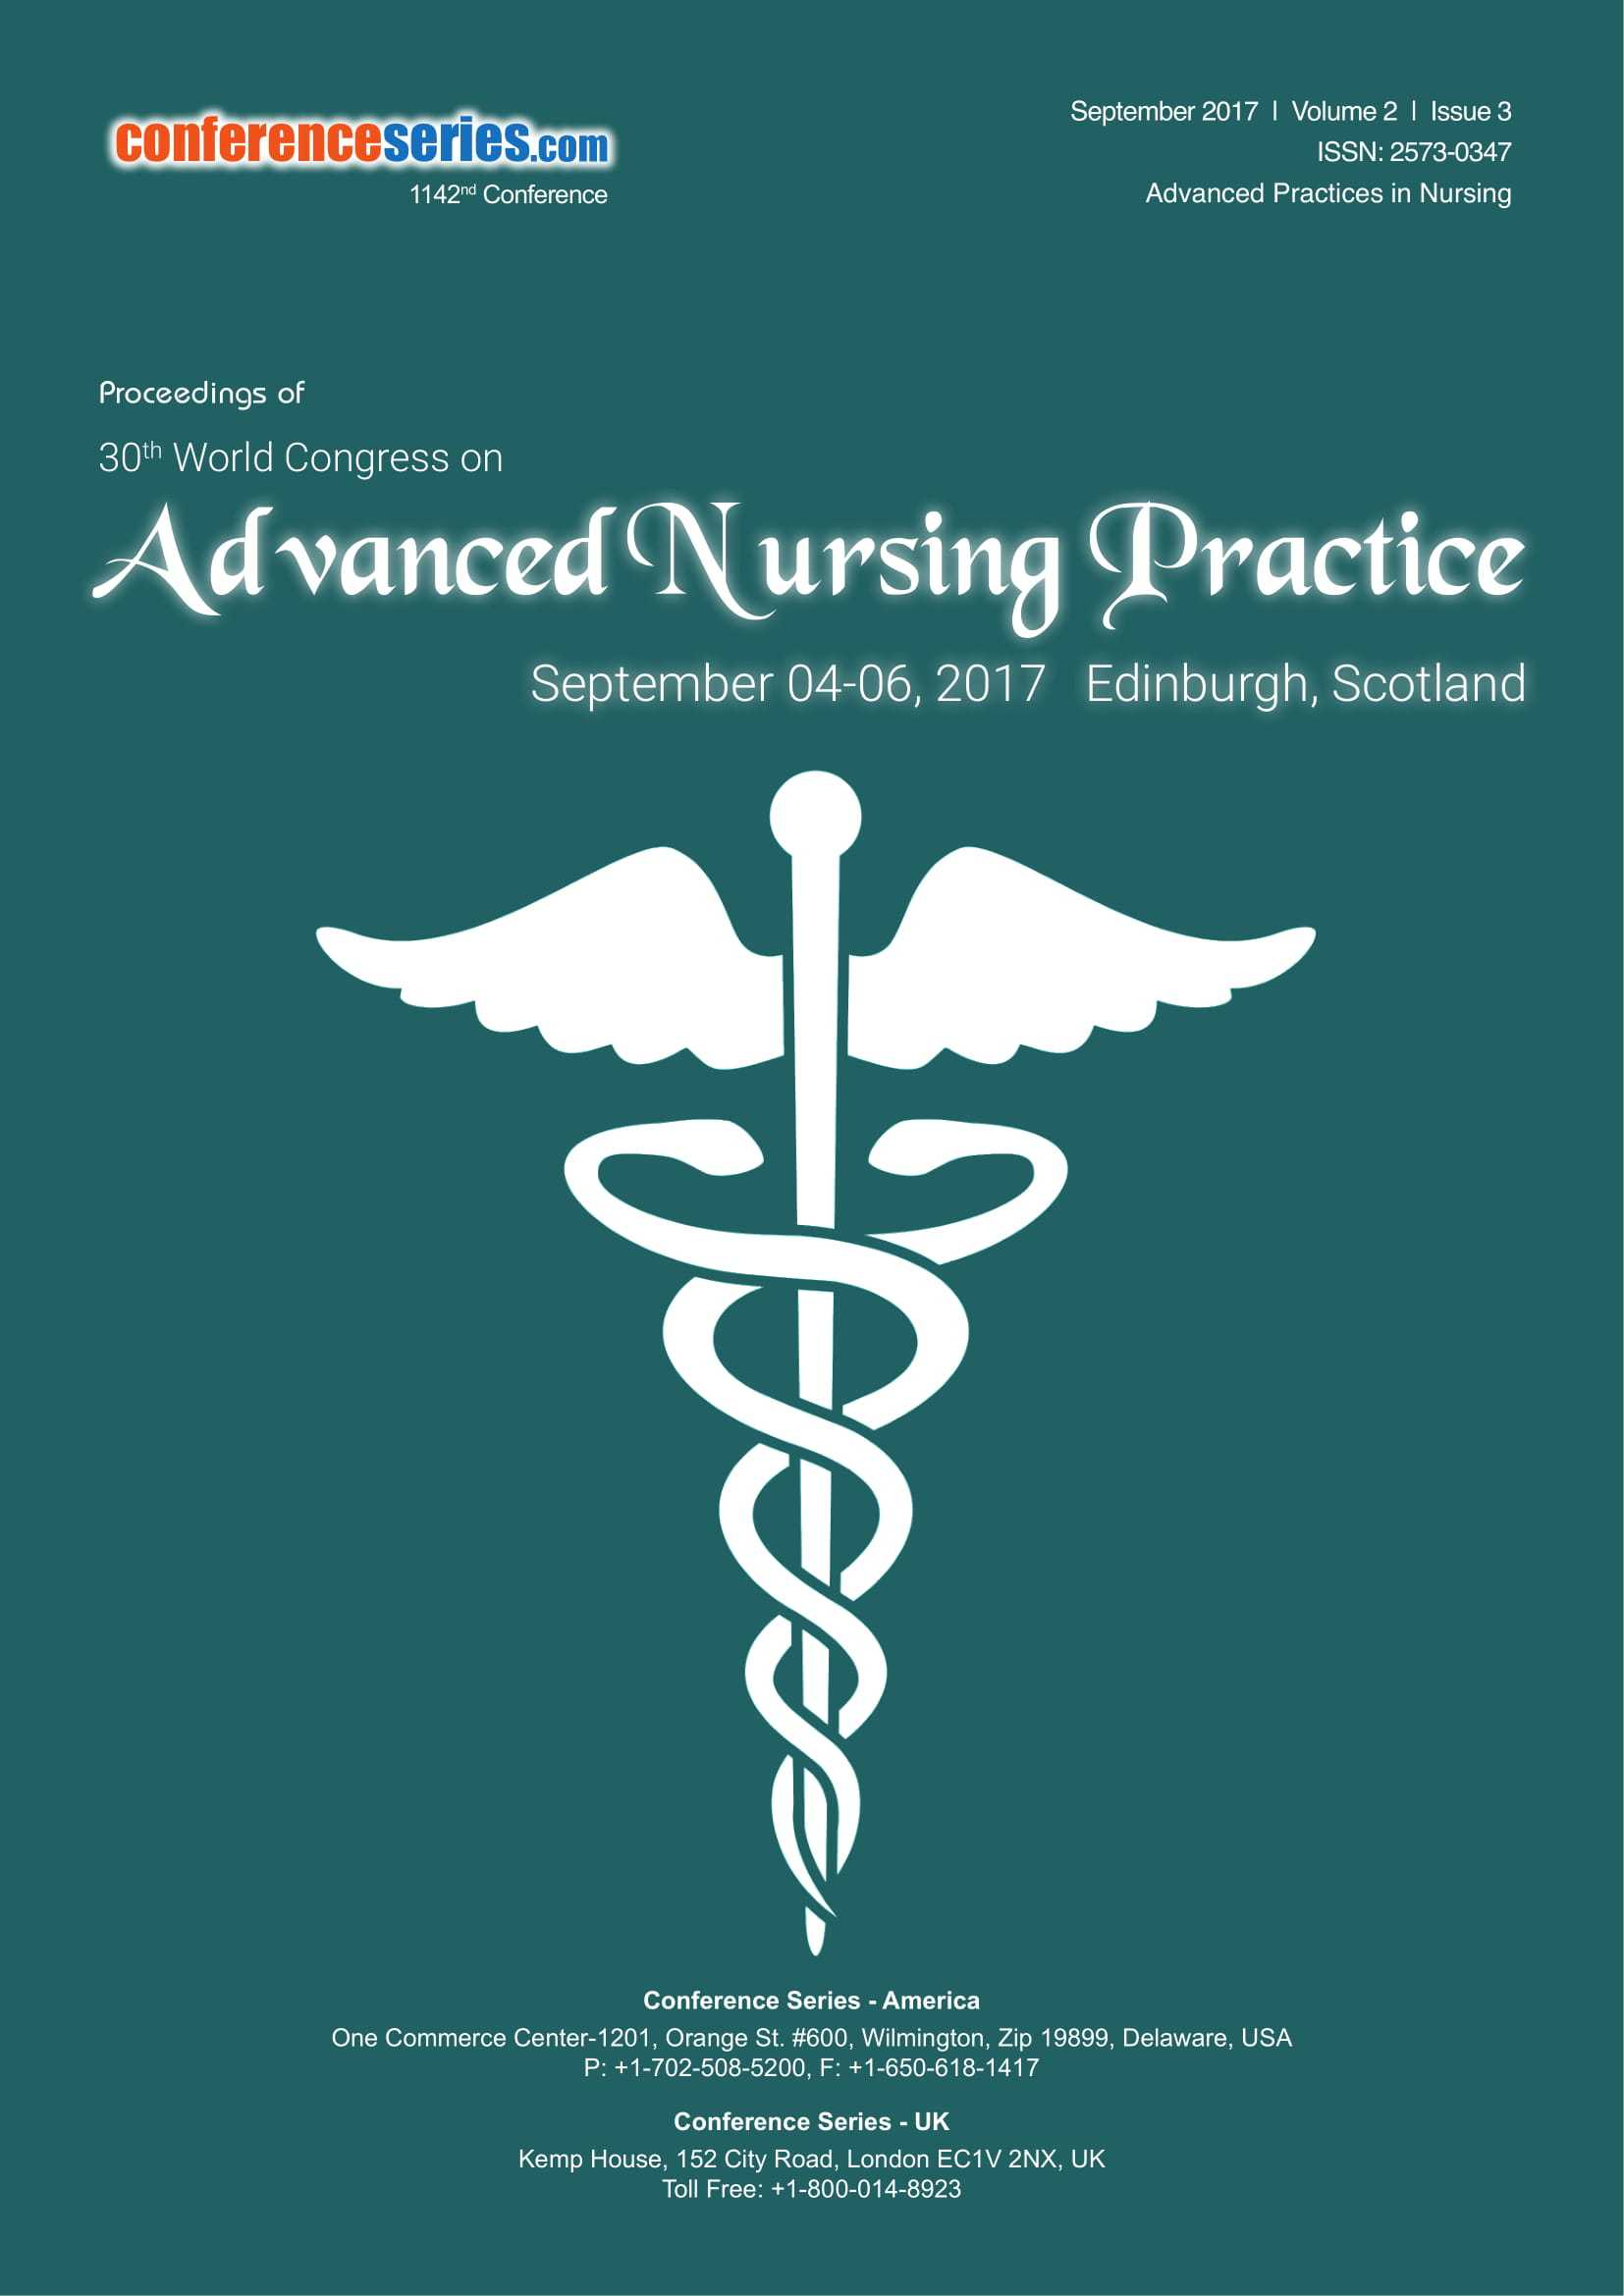 Advanced Nursing Practice 2017 proceedings